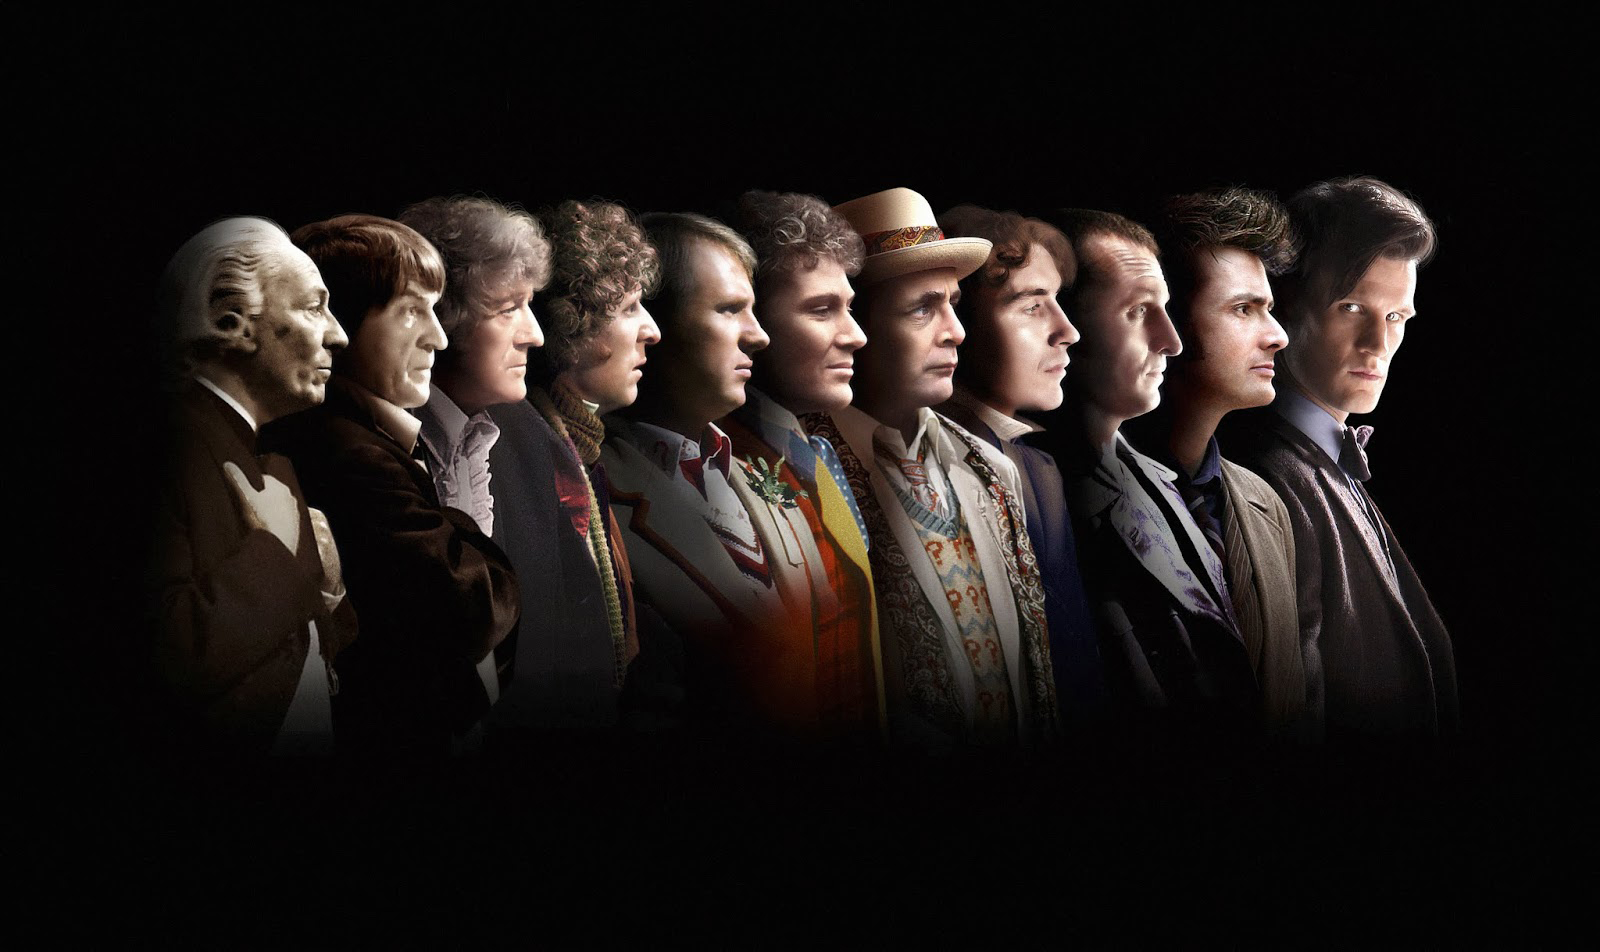 Here's Where You Can Watch Doctor Who's 50th Anniversary in Theaters